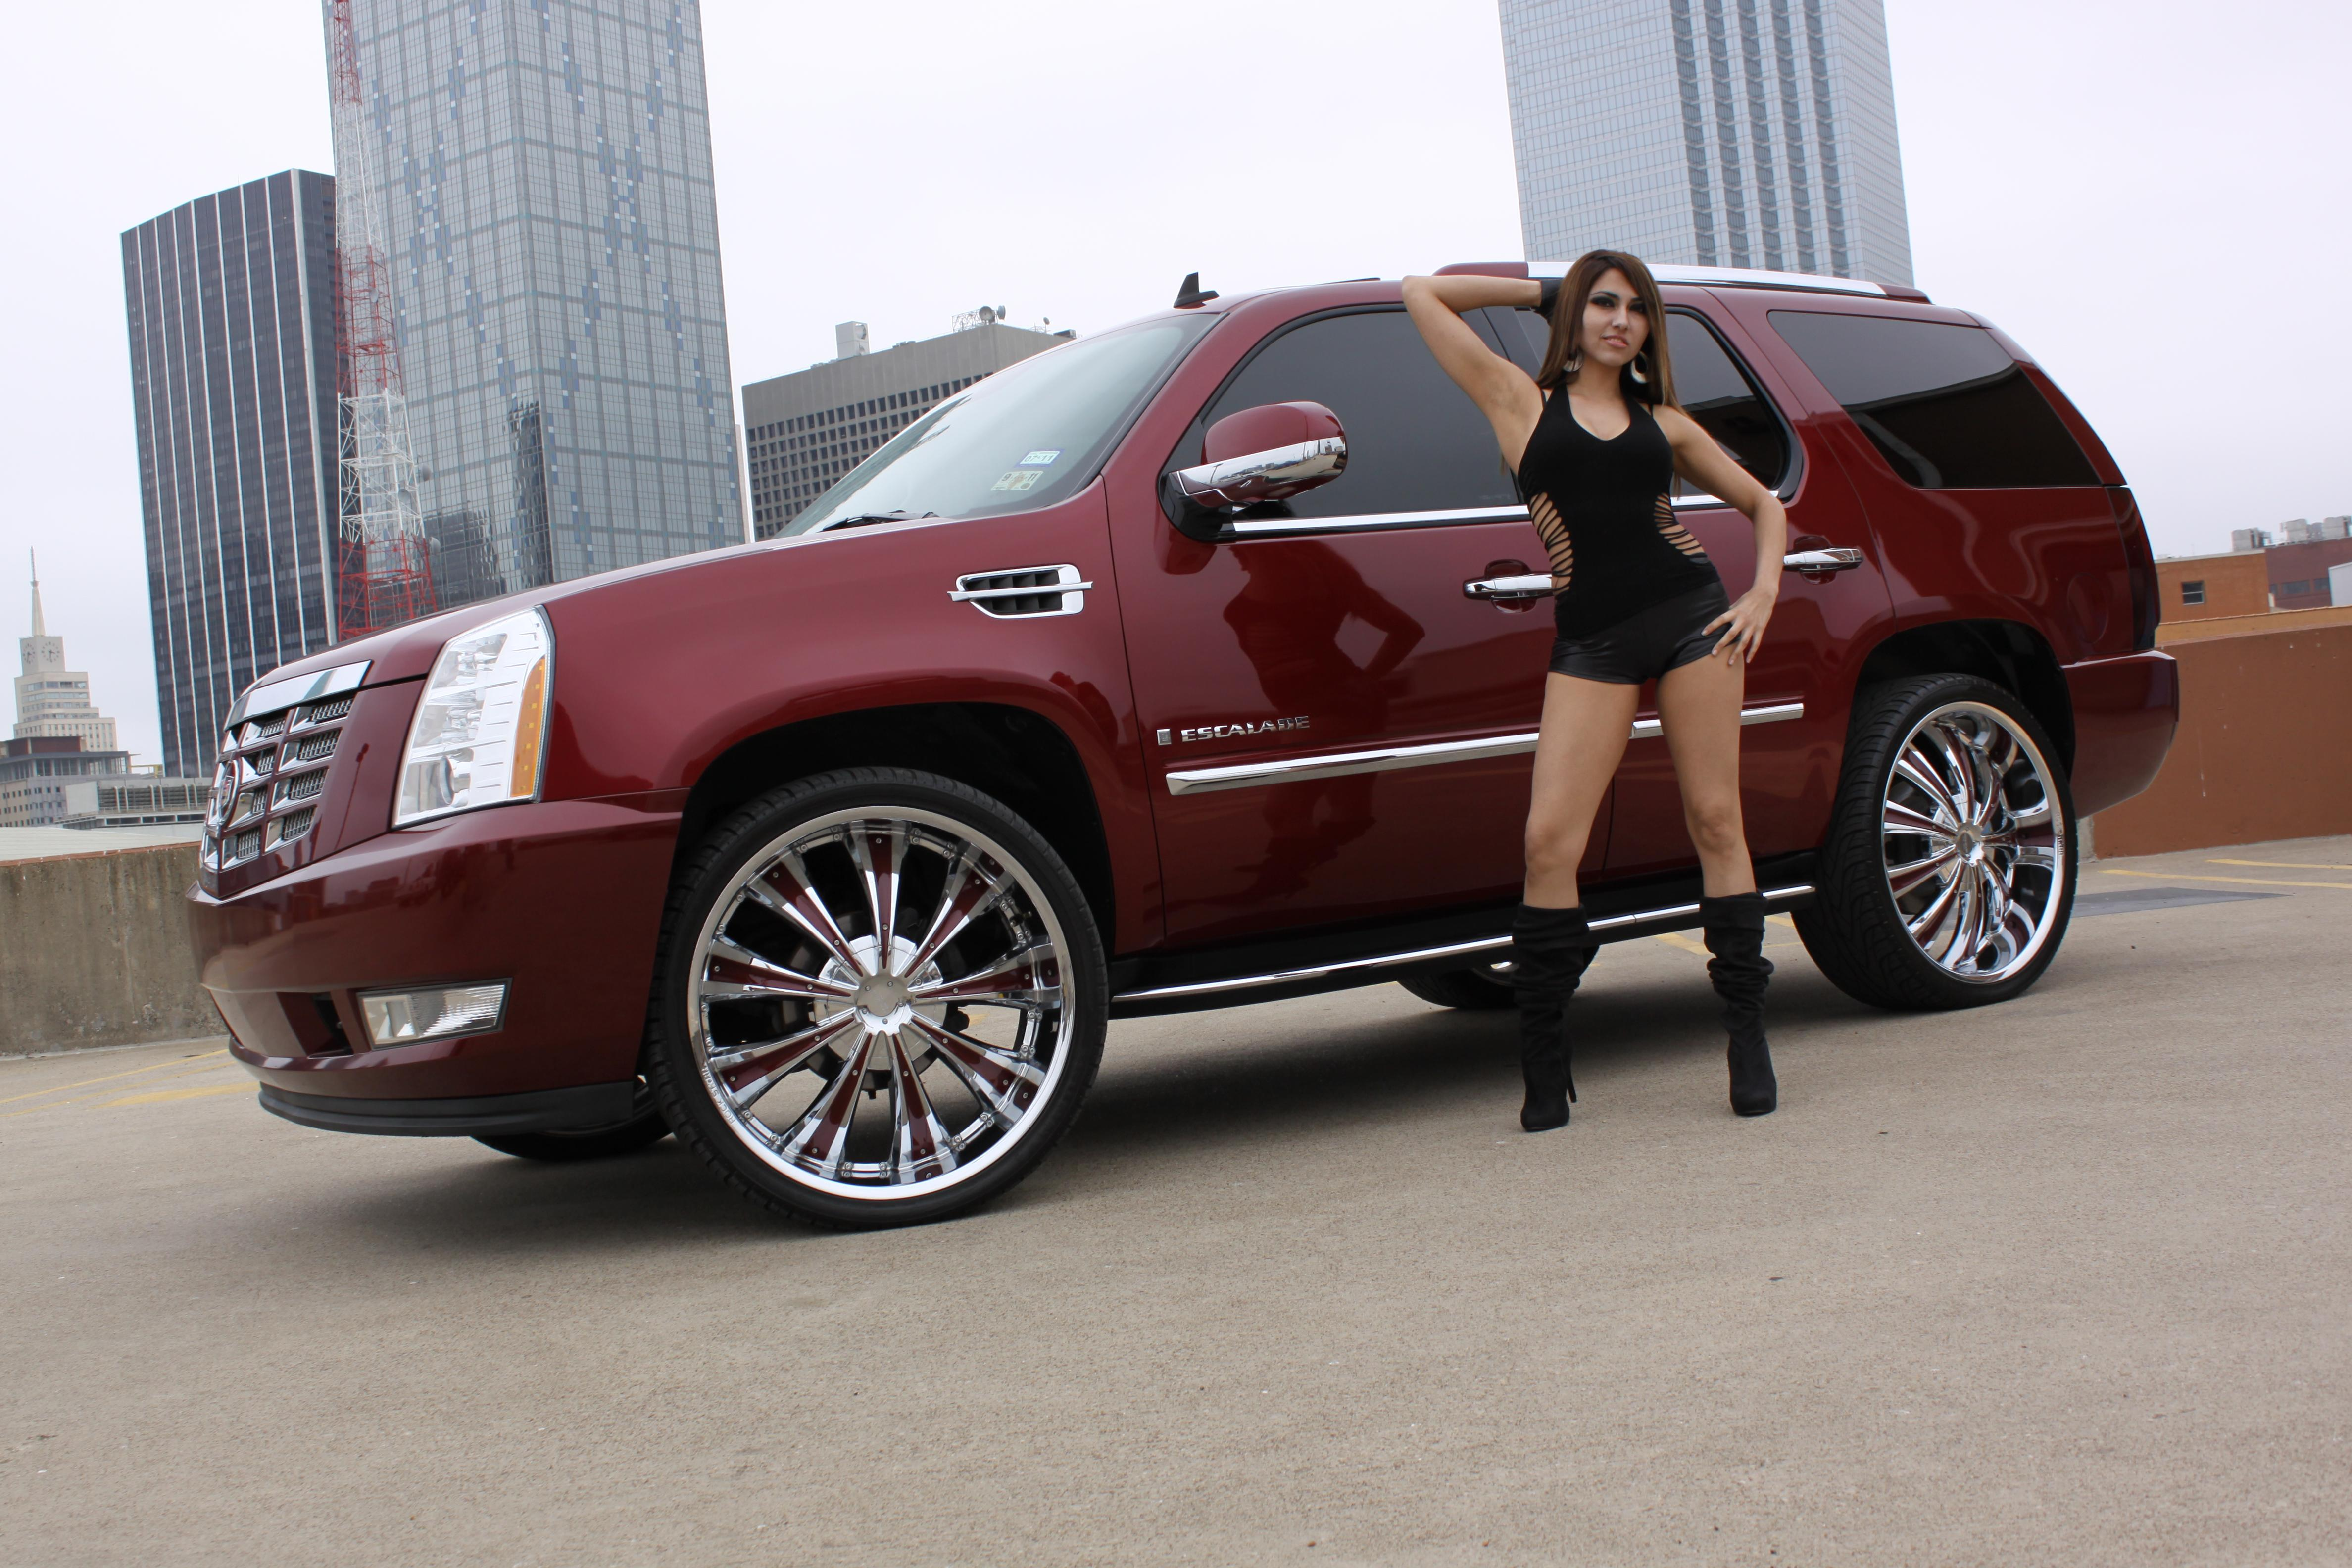 used clinton vehicles vehiclesearchresults for in cadillac vehicle escalade sale mo photo